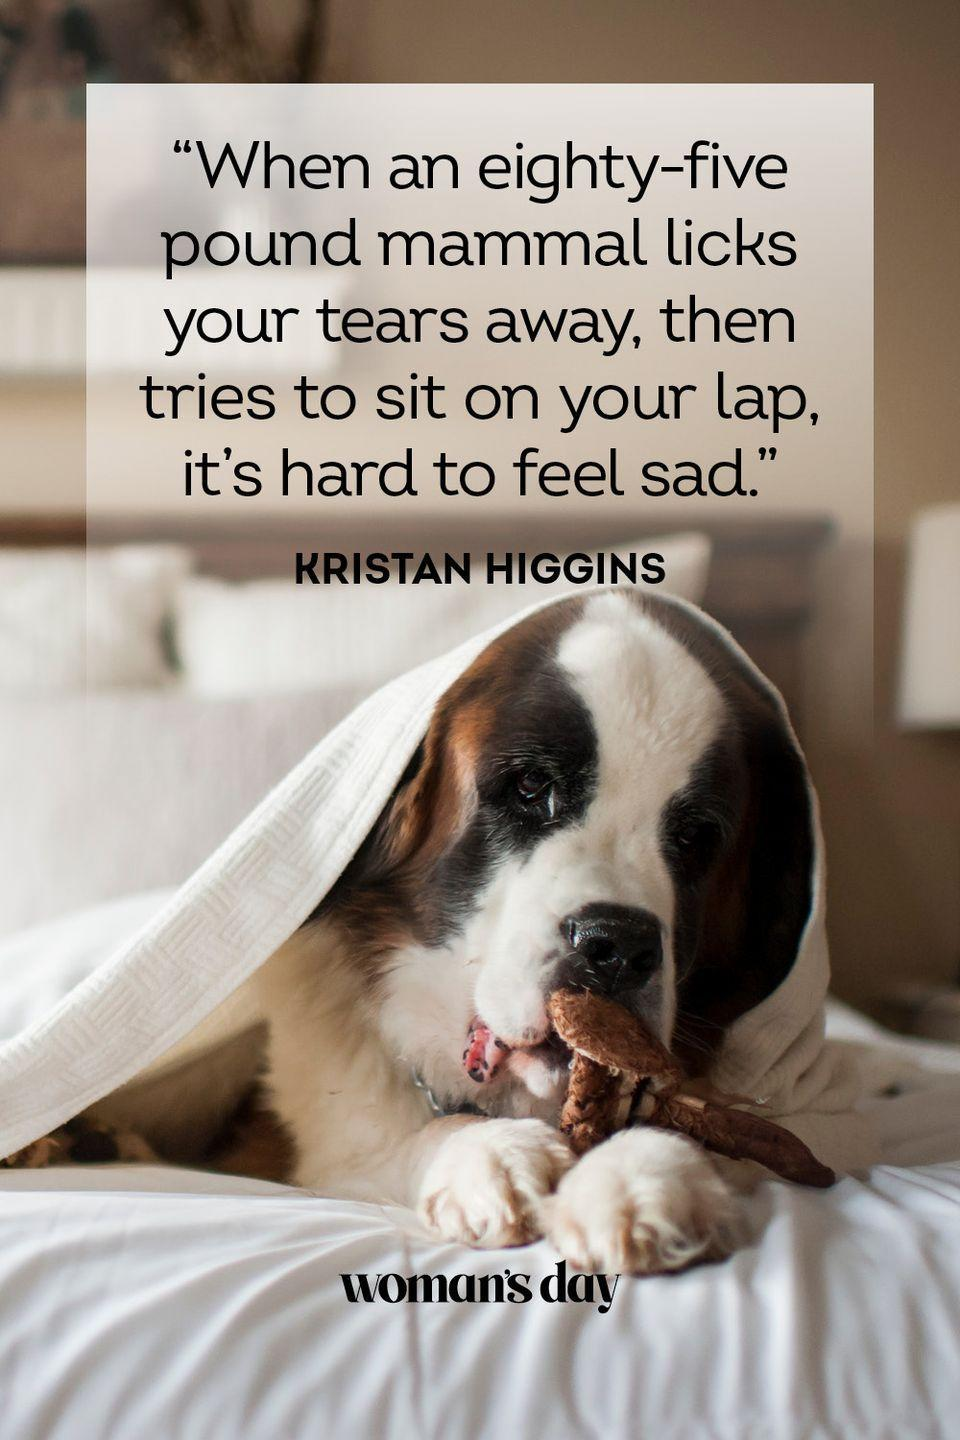 """<p>""""When an eighty-five pound mammal licks your tears away, then tries to sit on your lap, it's hard to feel sad.""""</p>"""